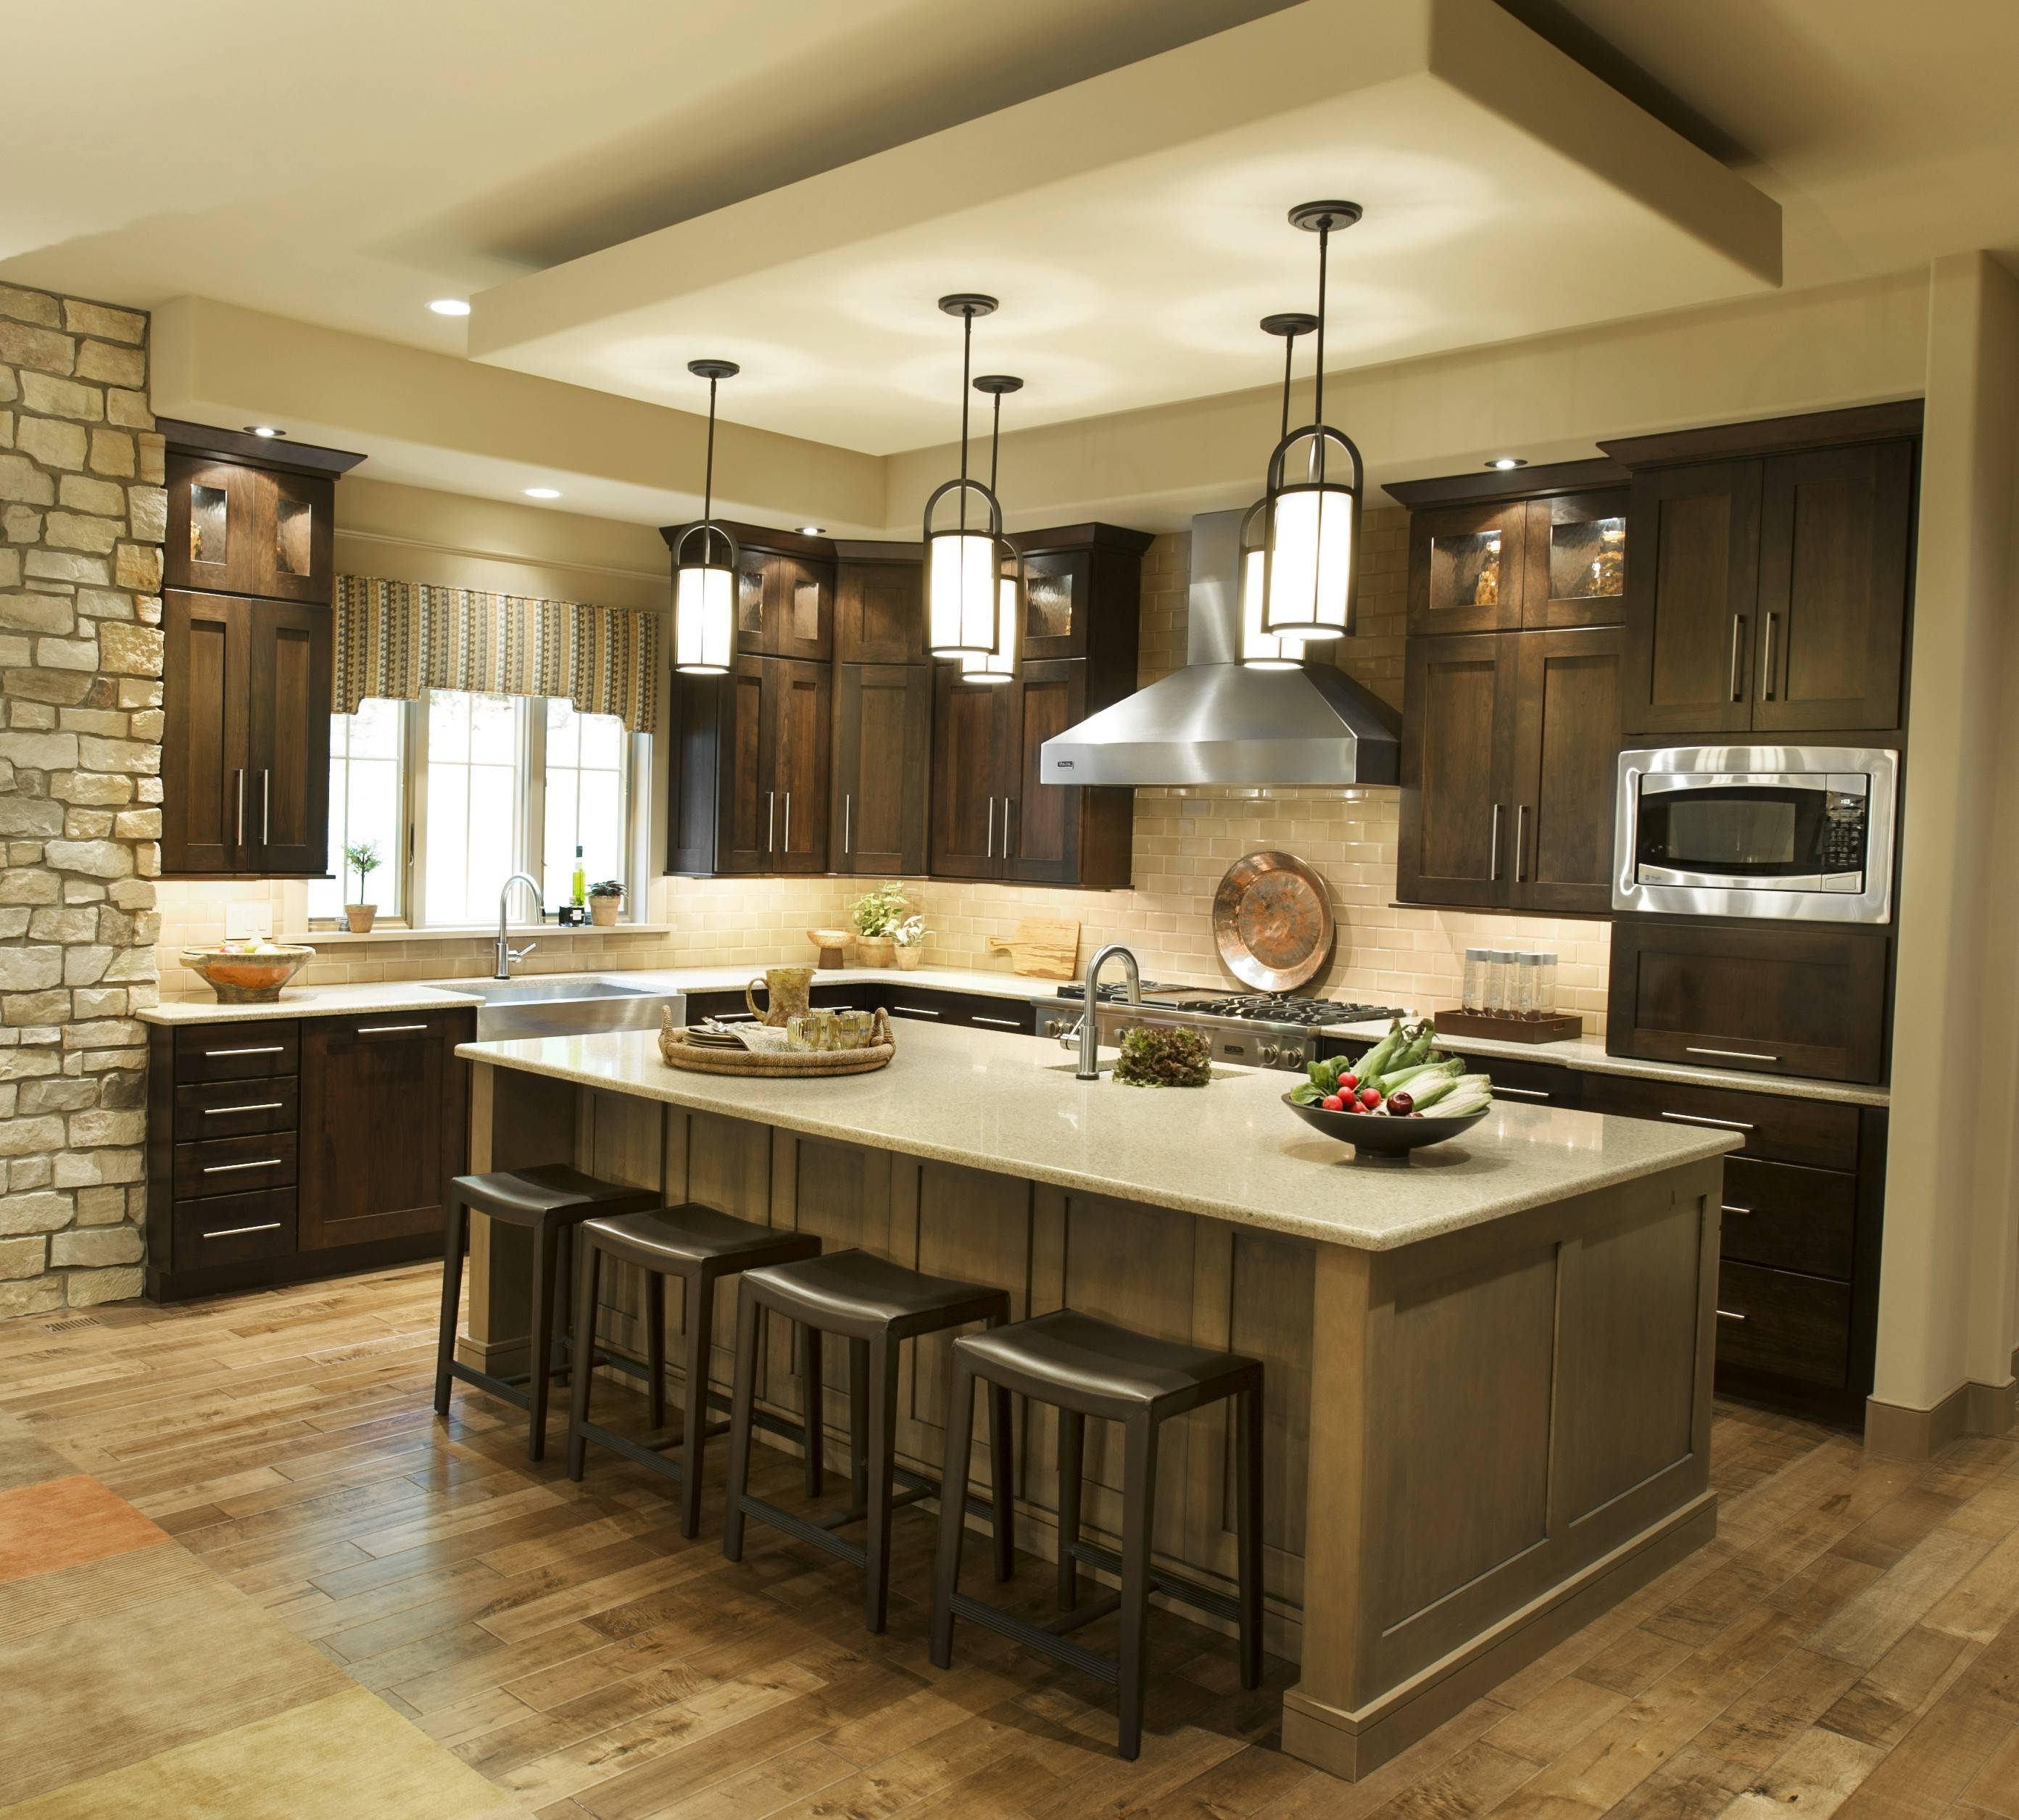 15 Inspirations of Double Pendant Lights for Kitchen